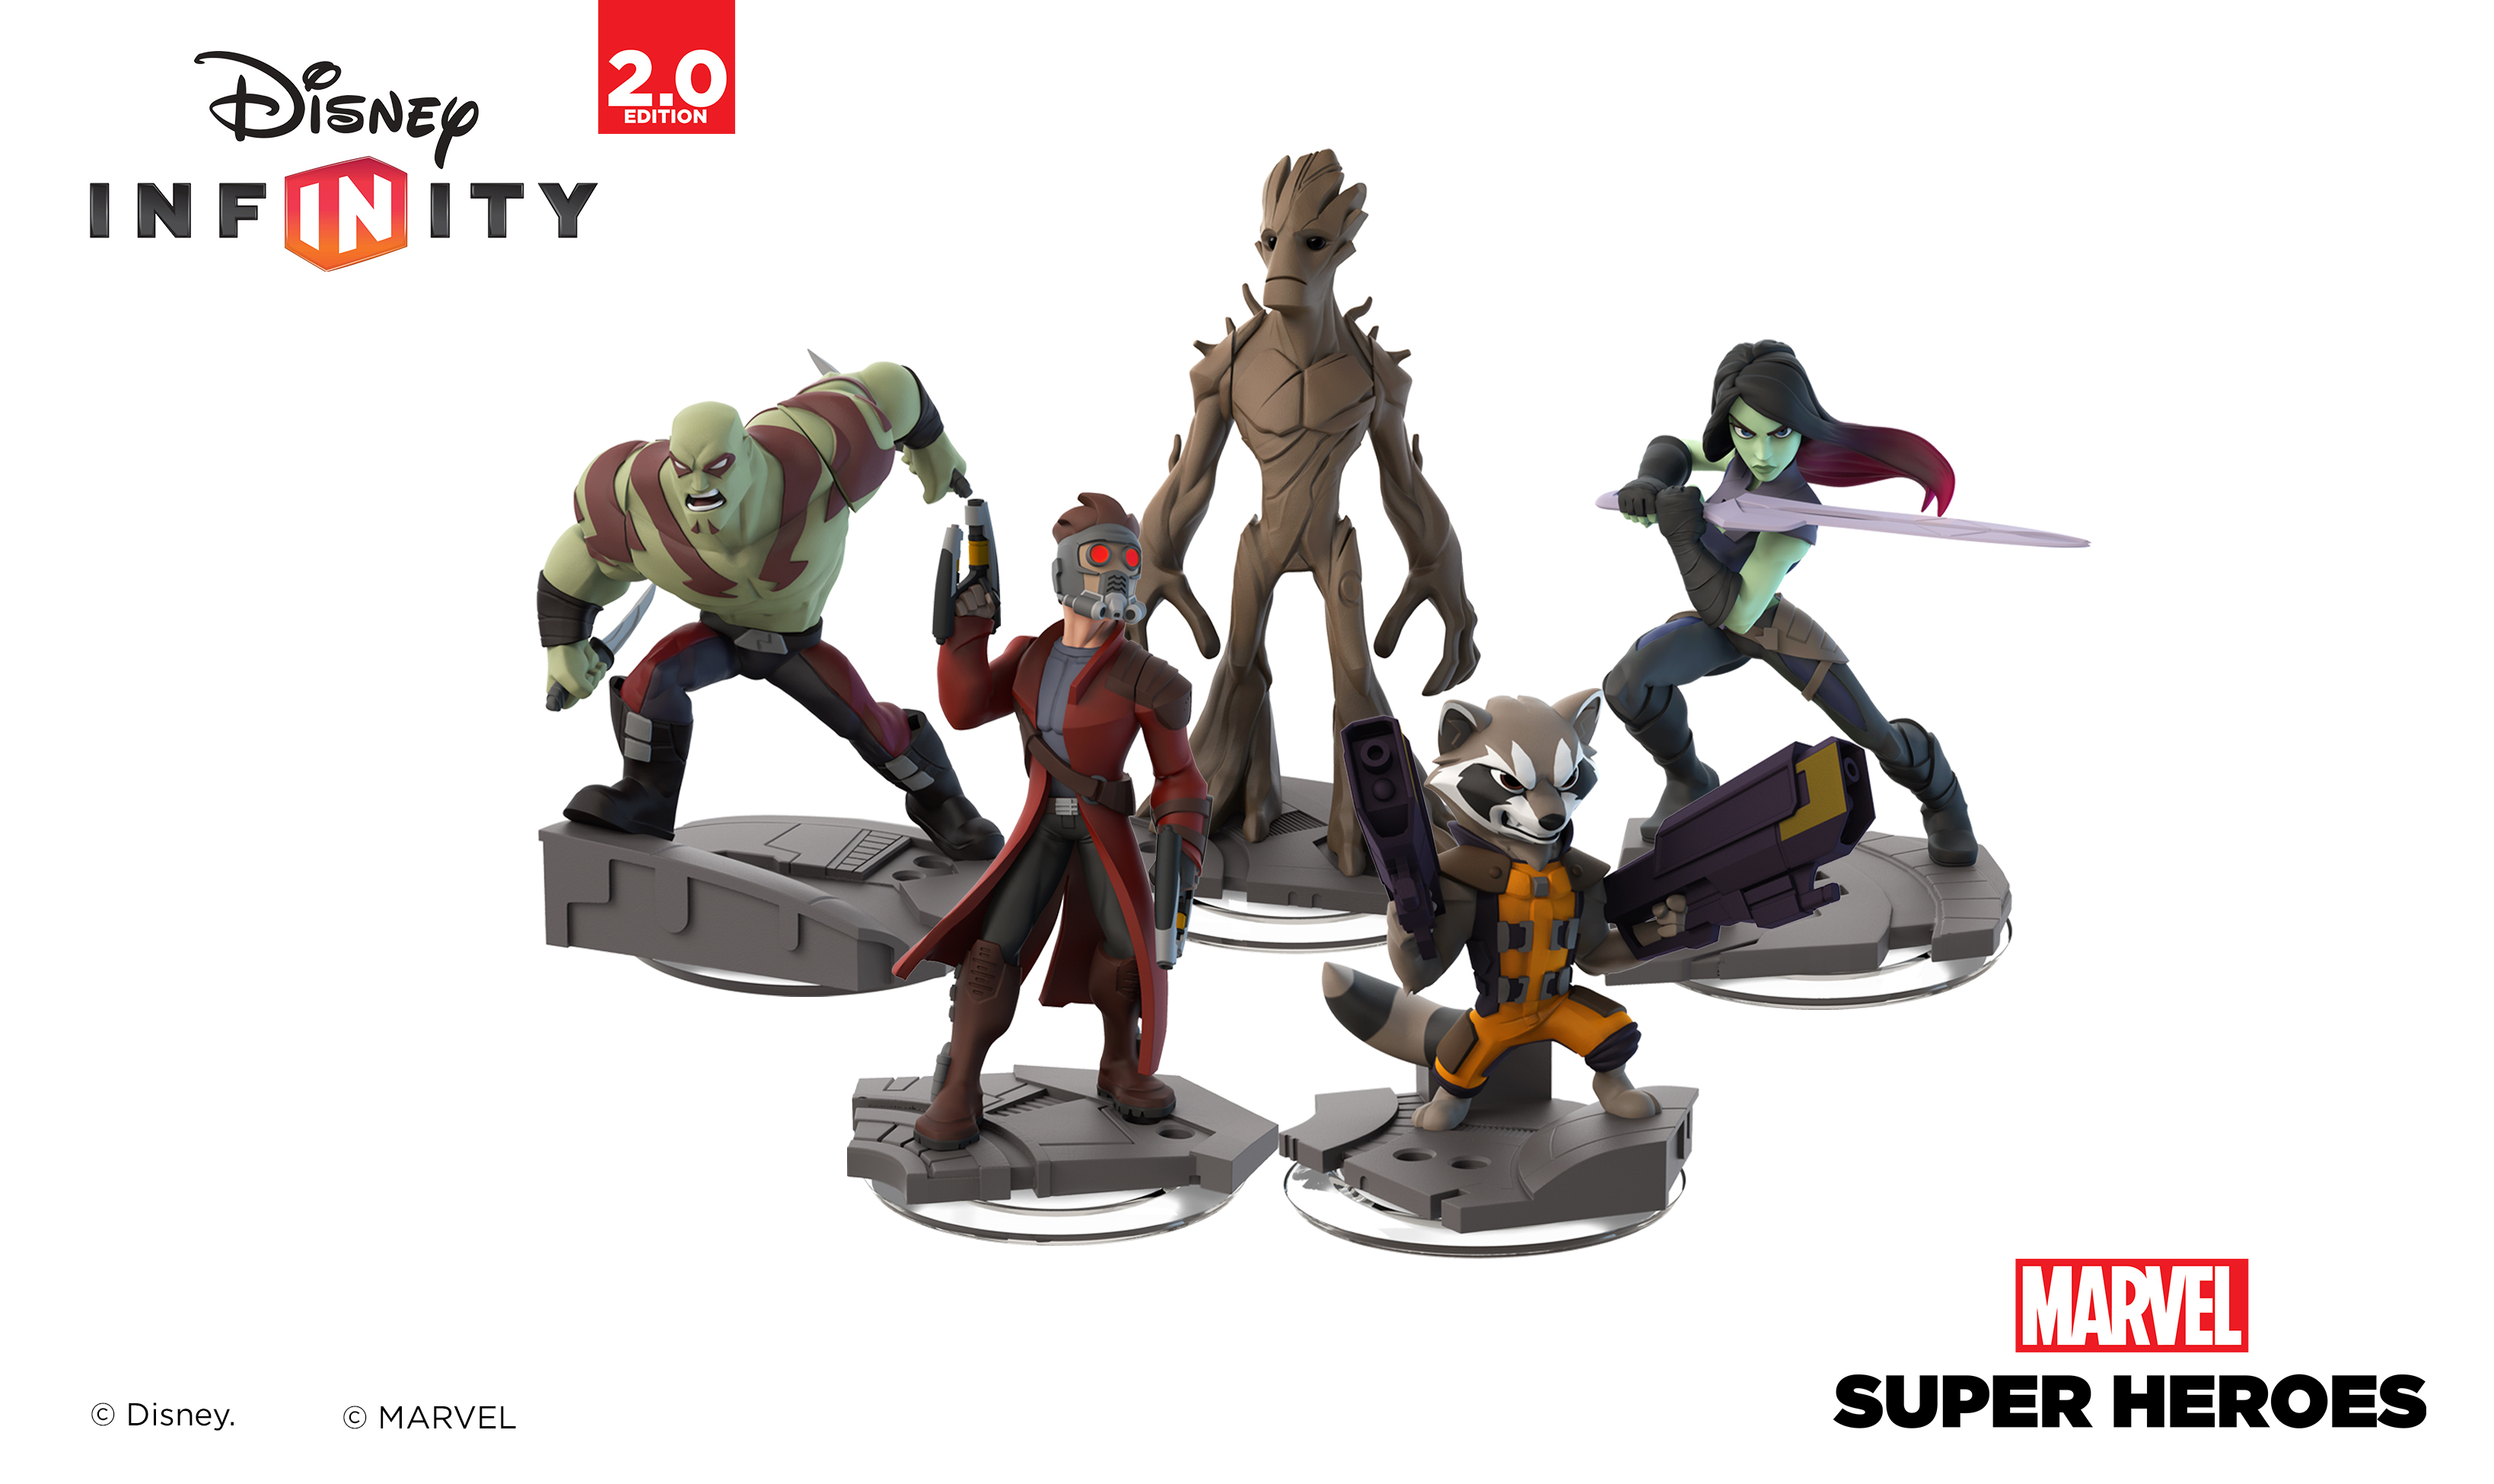 trailer disney figures box in takes infinity spotlight toy optimal the super marvel heroes character